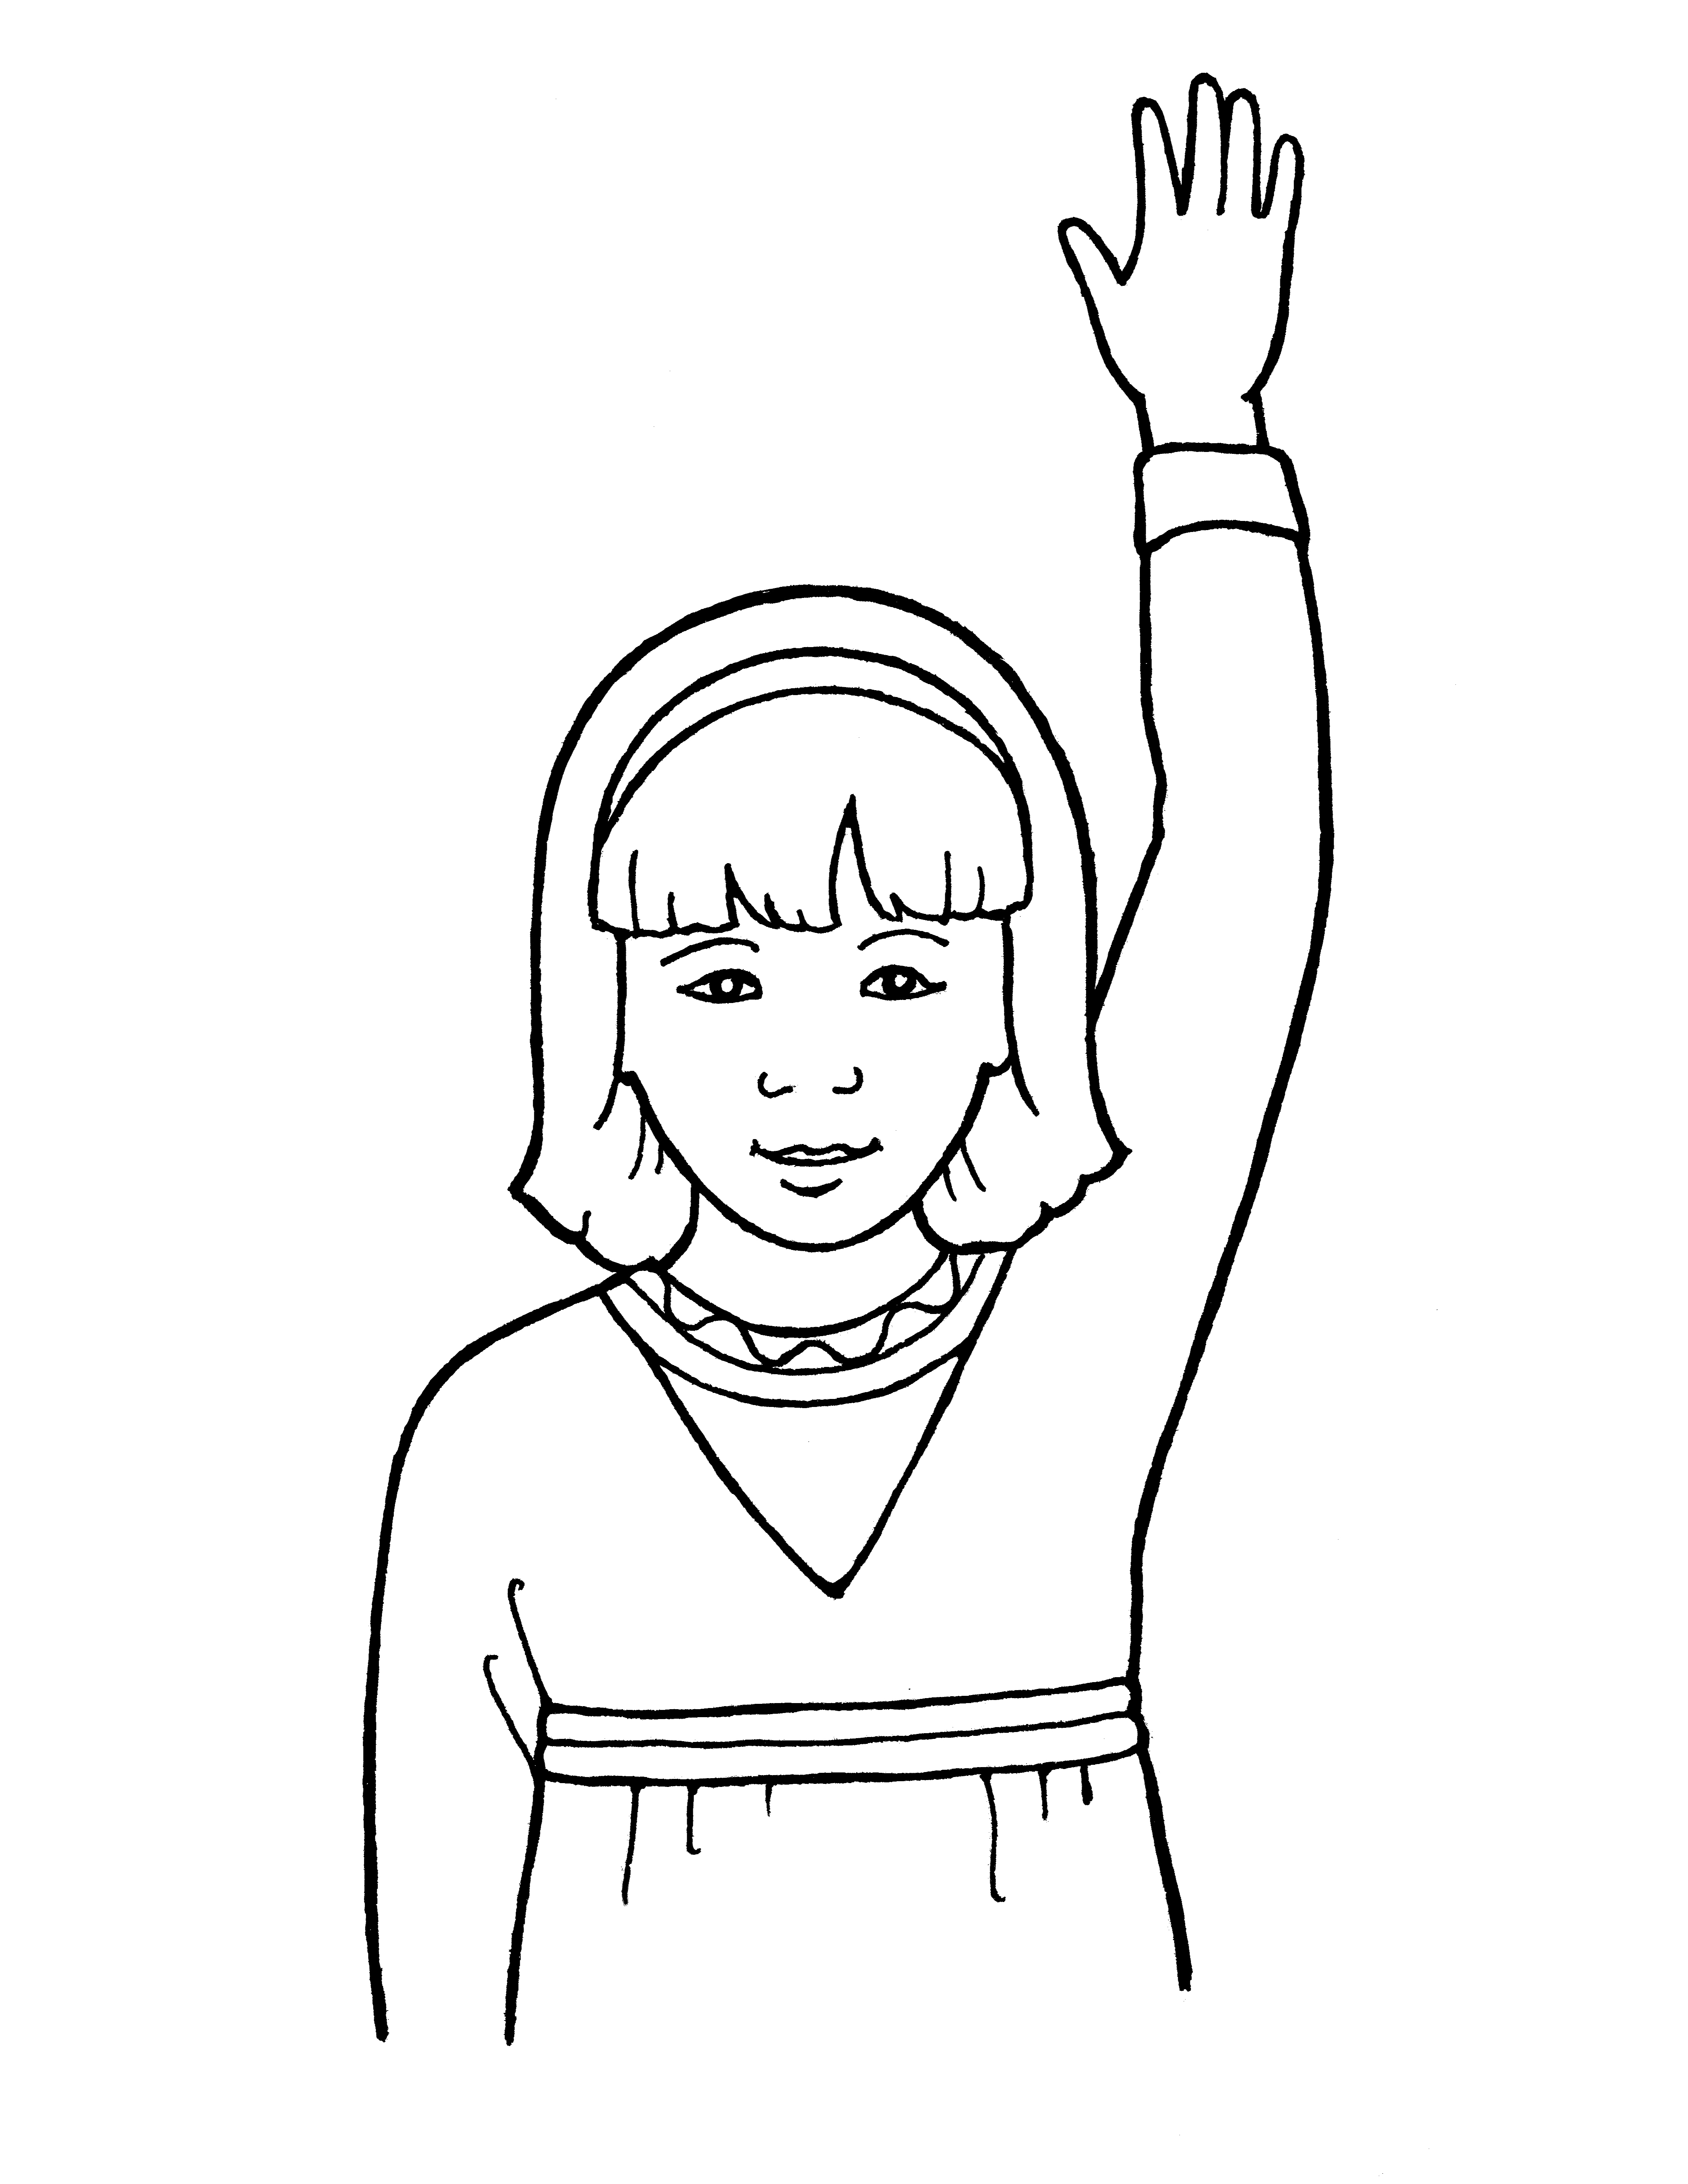 An illustration of a young girl reverently raising her hand.